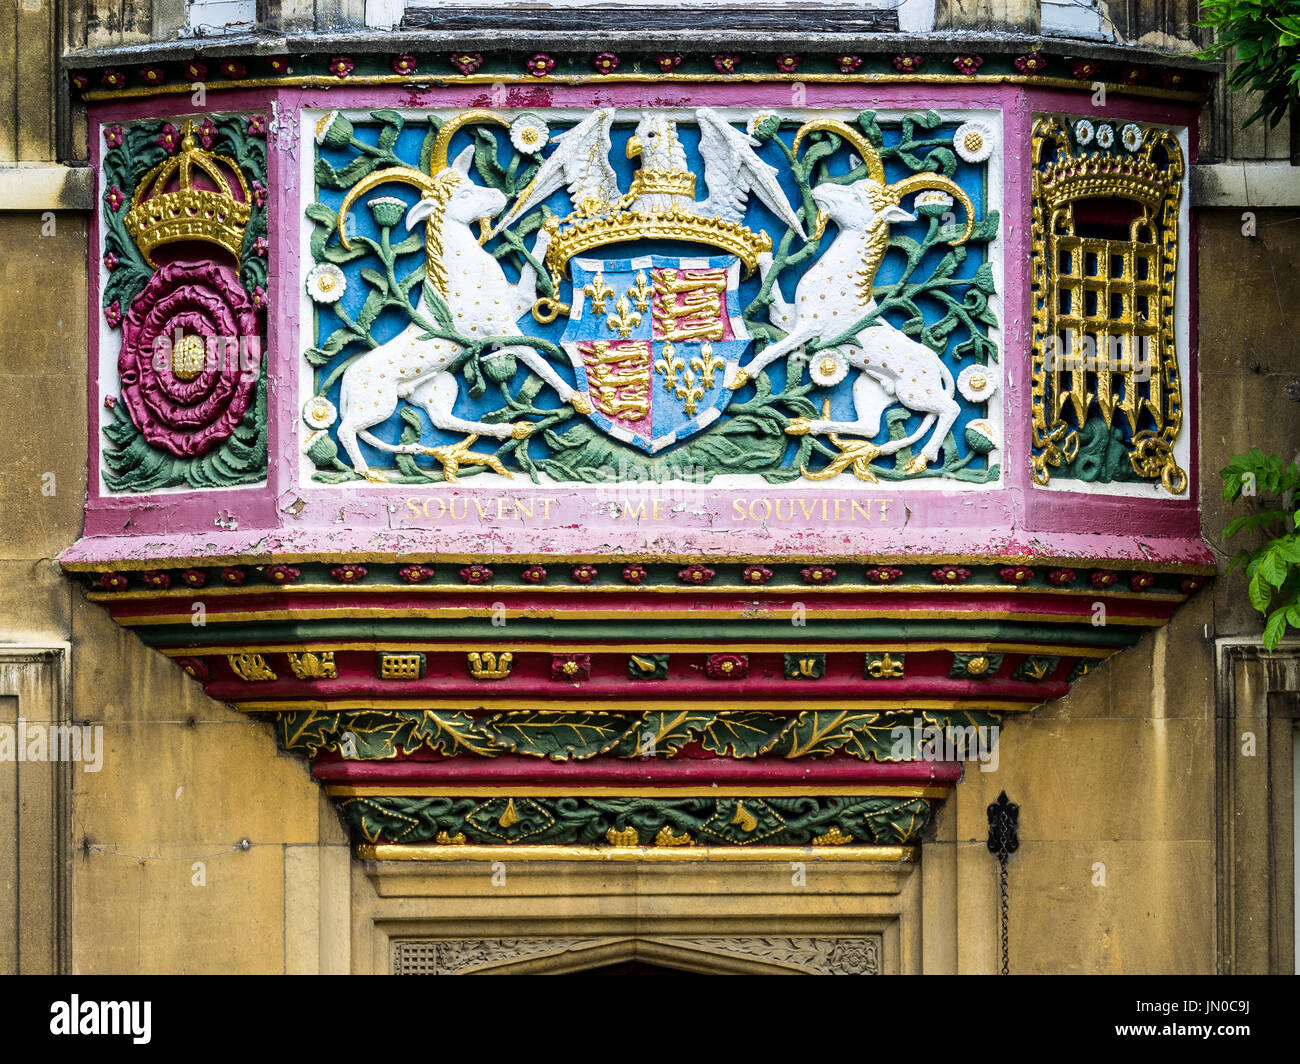 Christ's College Cambridge.  Decoration on the Master's Lodge at Christ's College, Cambridge University in the UK. The College was established in 1505 - Stock Image